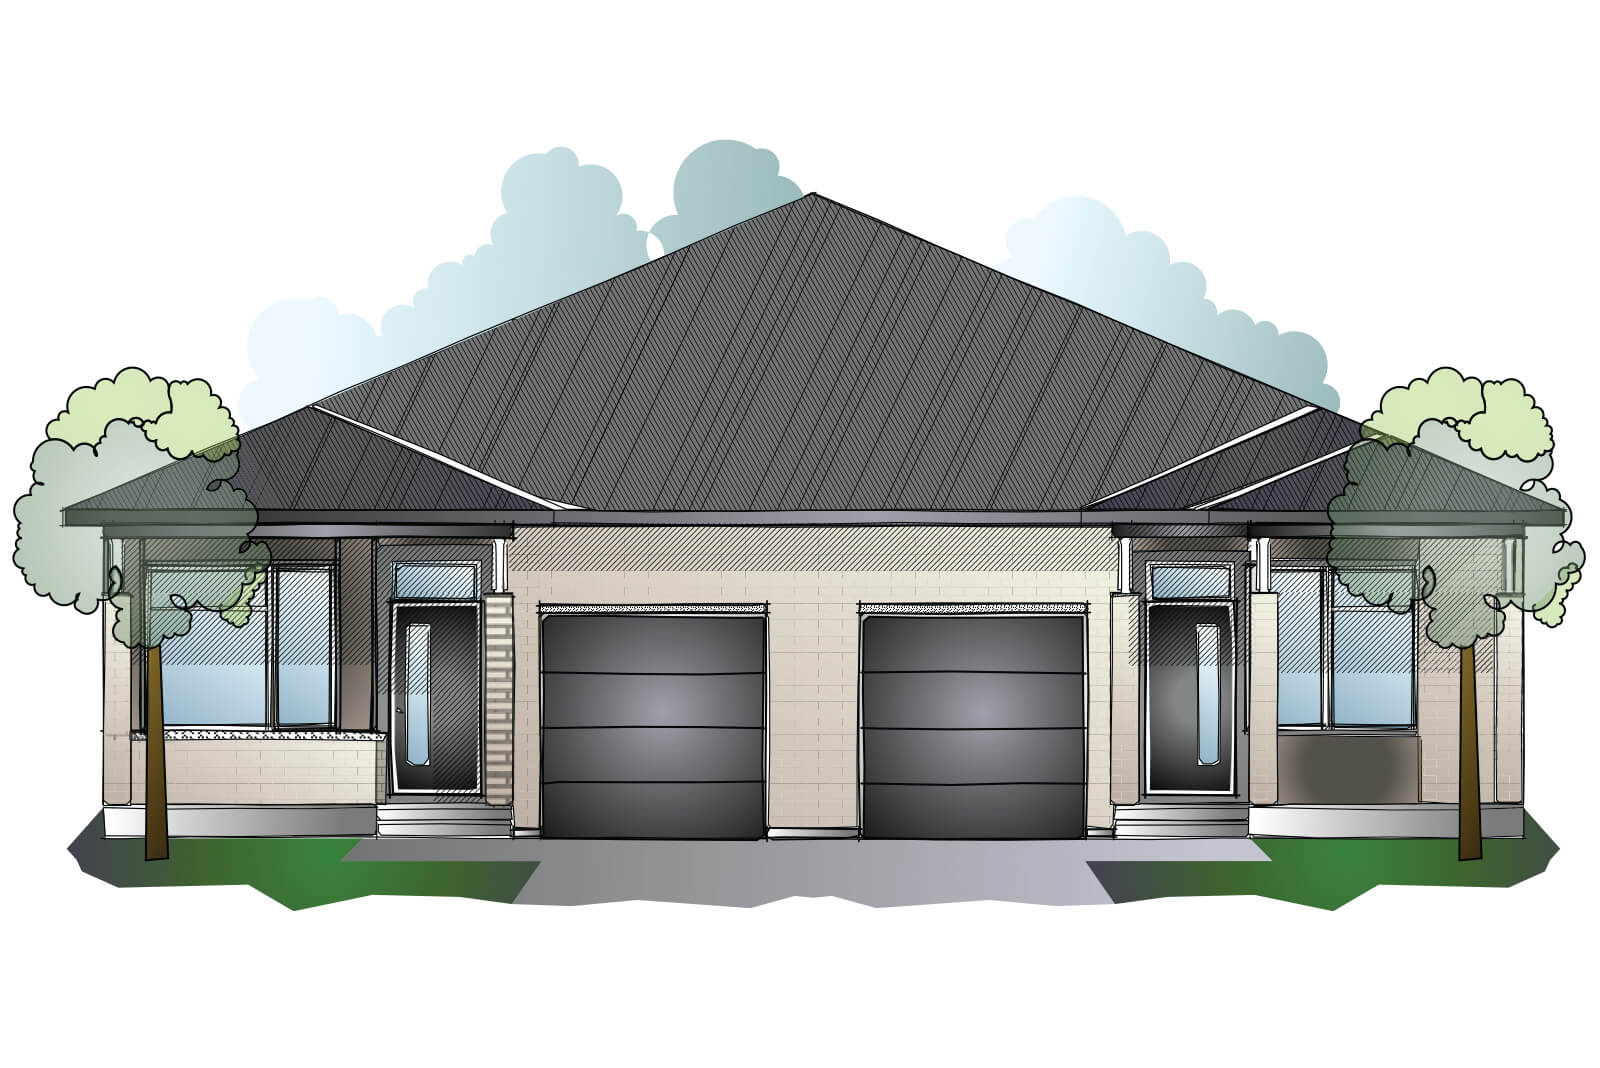 New Ottawa Single Family Home Quick Possession Bryant (Lot 185) in Millers Crossing in Carleton Place, located at 158 Rathwell Street Built By Cardel Homes